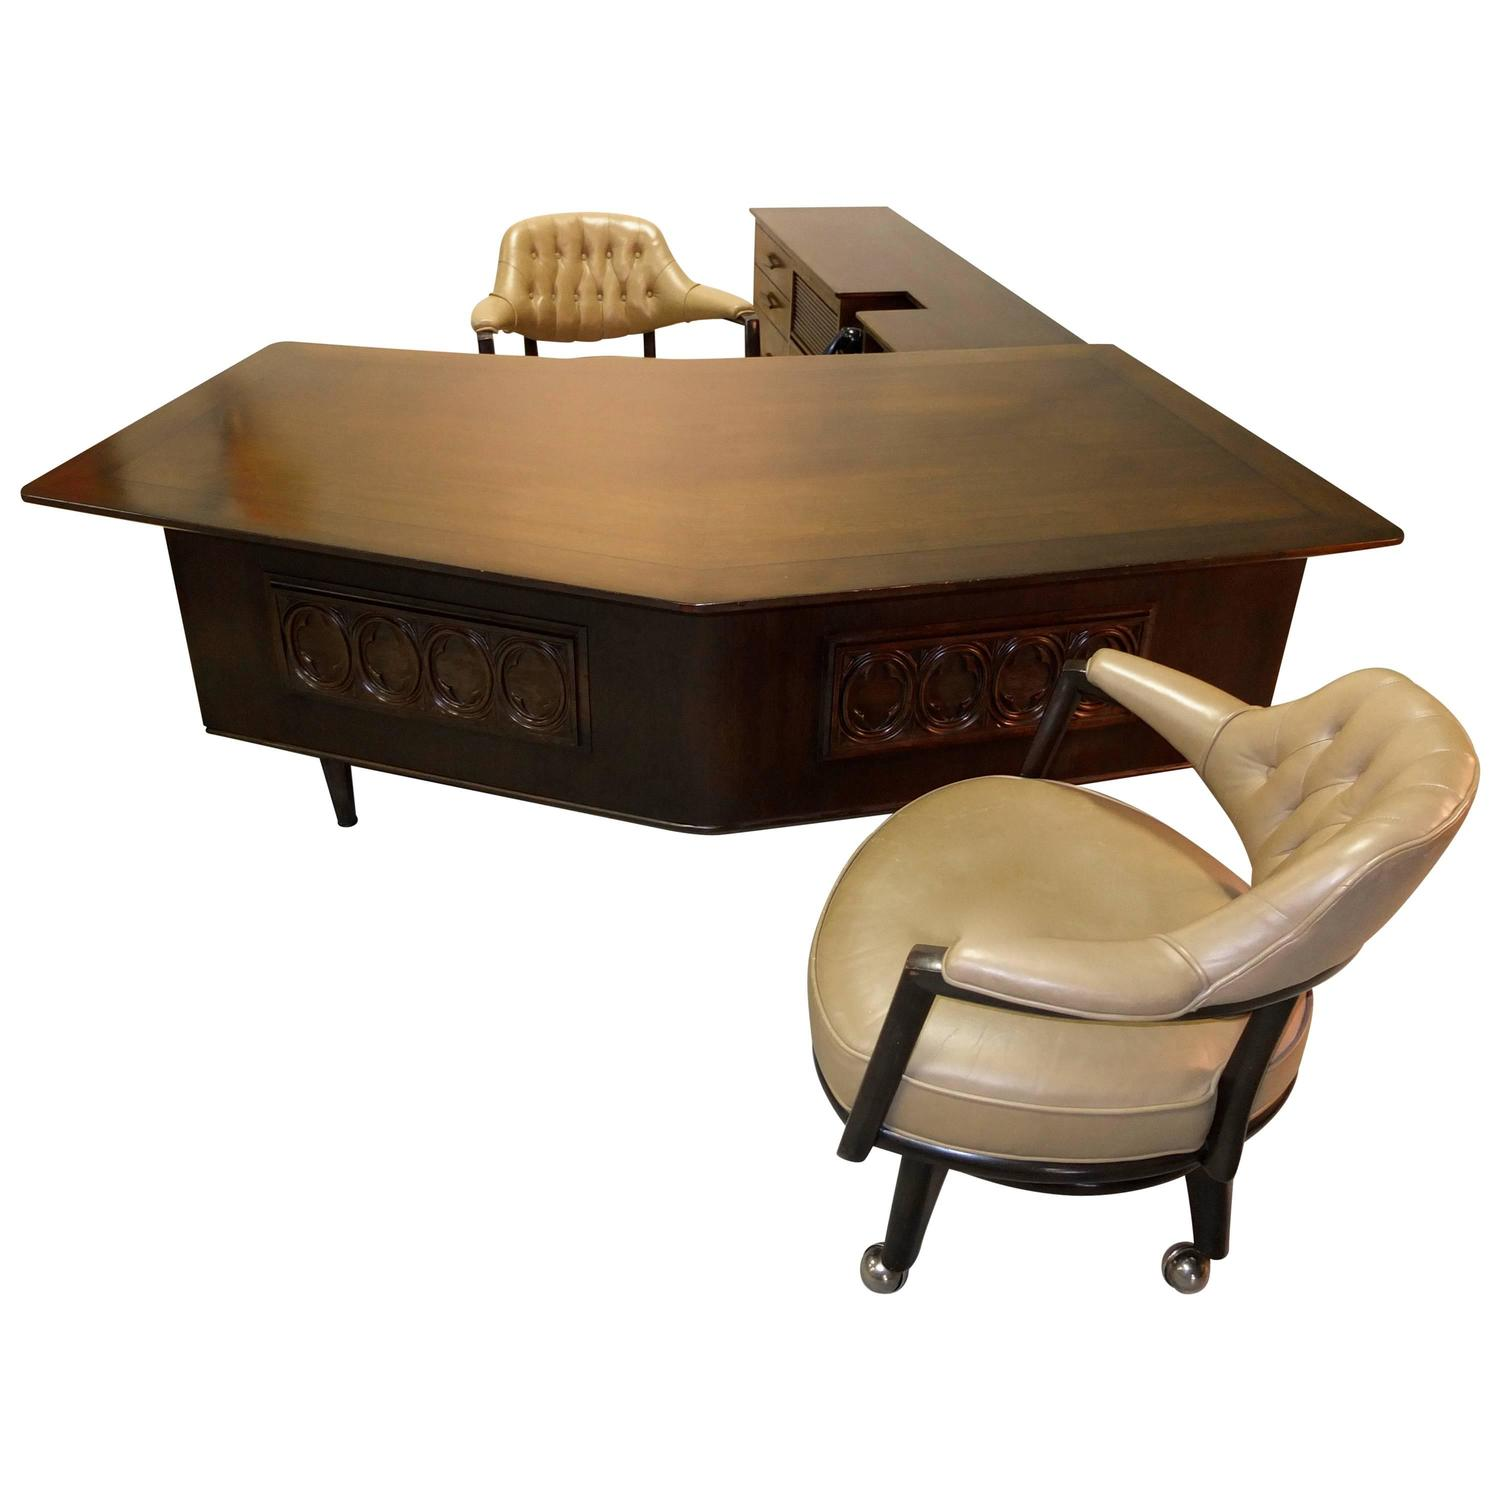 Monteverdi-Young Executive Boomerang Desk with Return and Guest Chairs For  Sale at 1stdibs